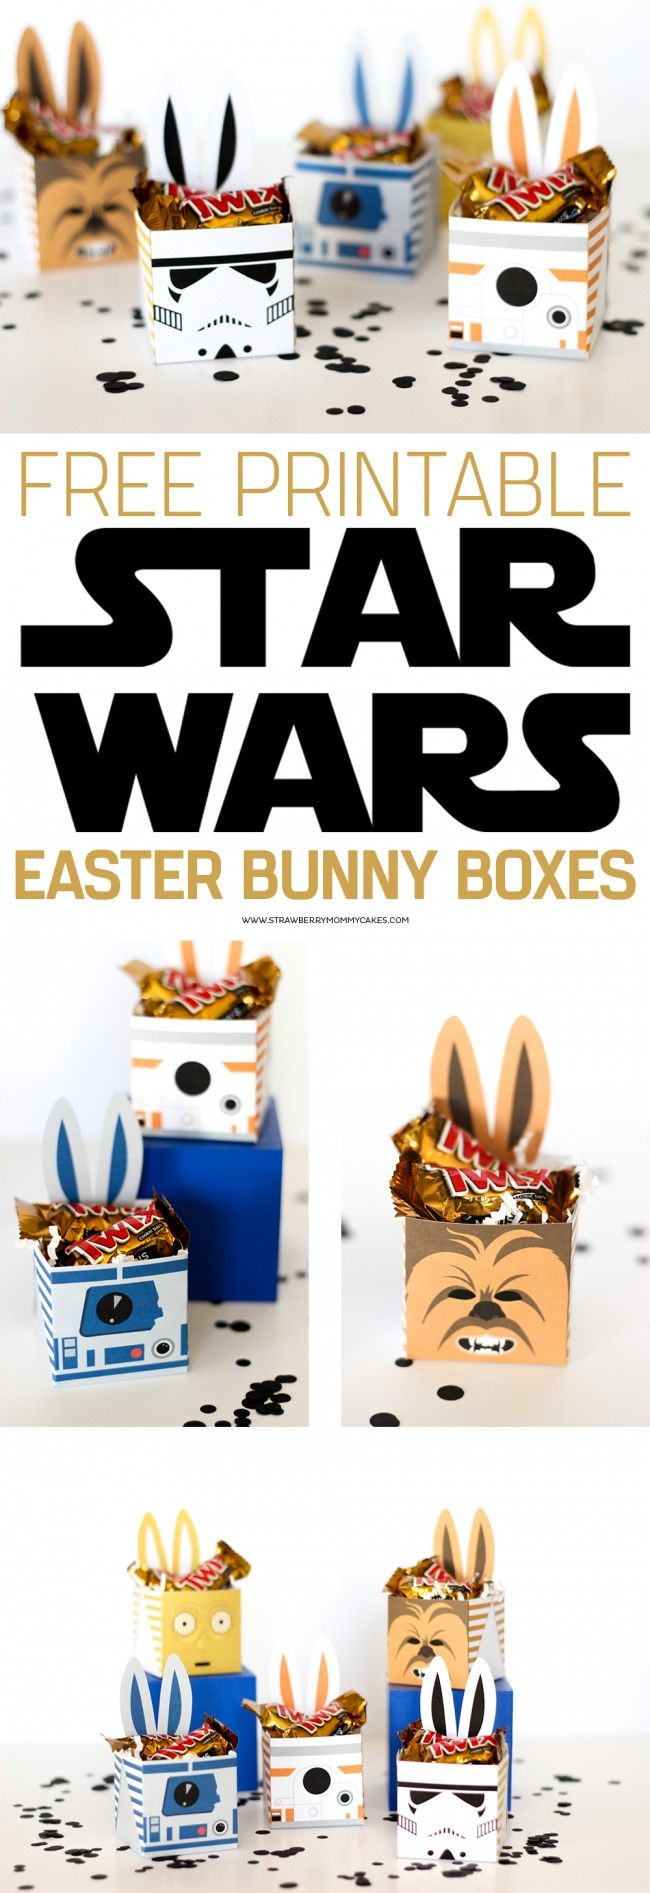 Star wars easter bunny boxes easter bunny easter and bunny may the force be with you this easter with these fun star wars easter bunny boxes negle Images